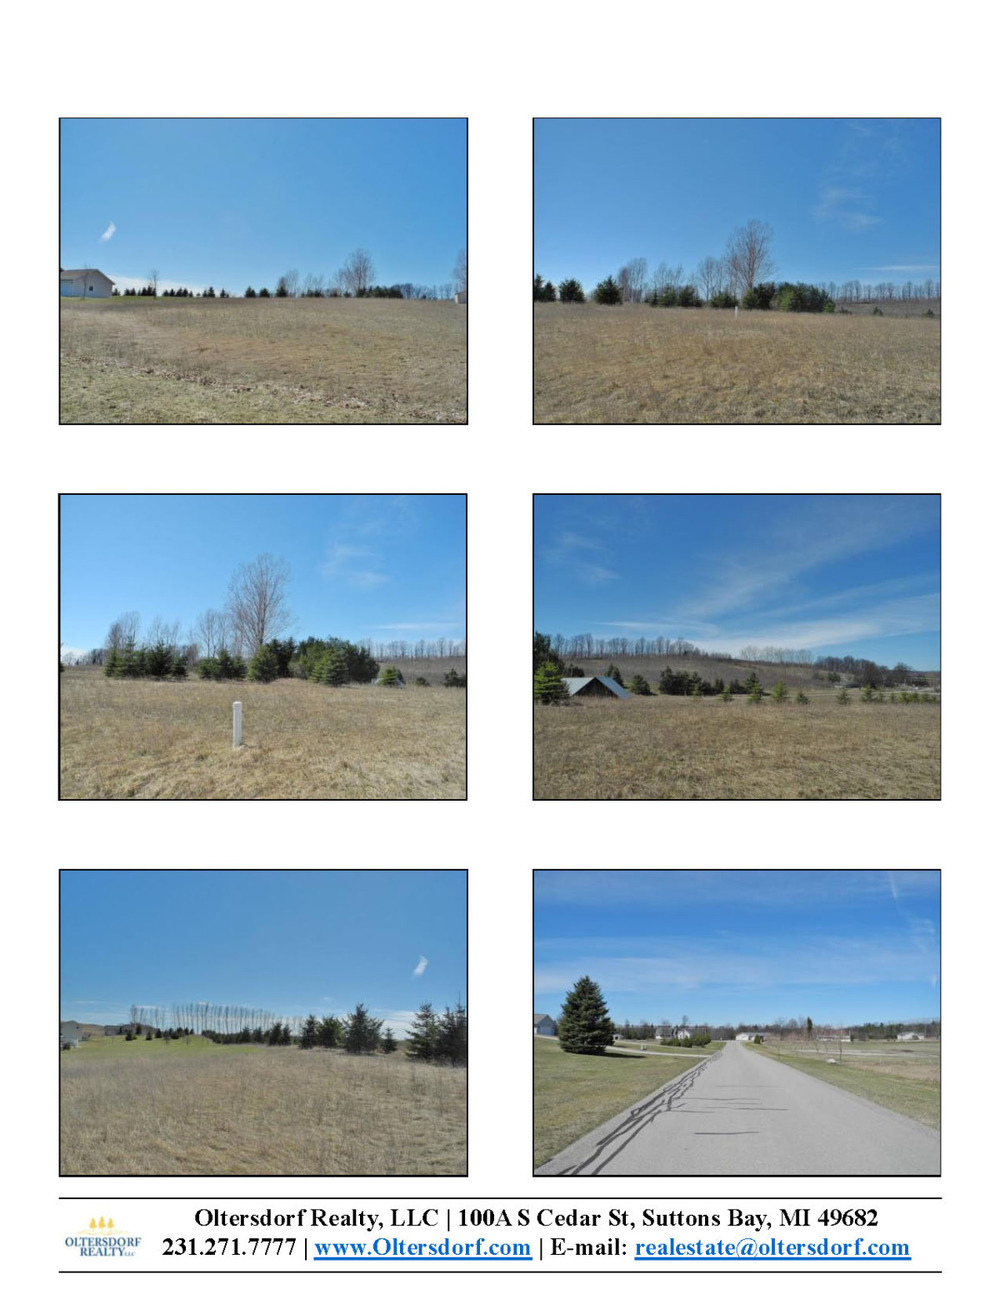 2056 s country lane, suttons bay, donnybrook farms, leelanau county vacant lot for sale by oltersdorf realty llc - marketing package (2).jpg